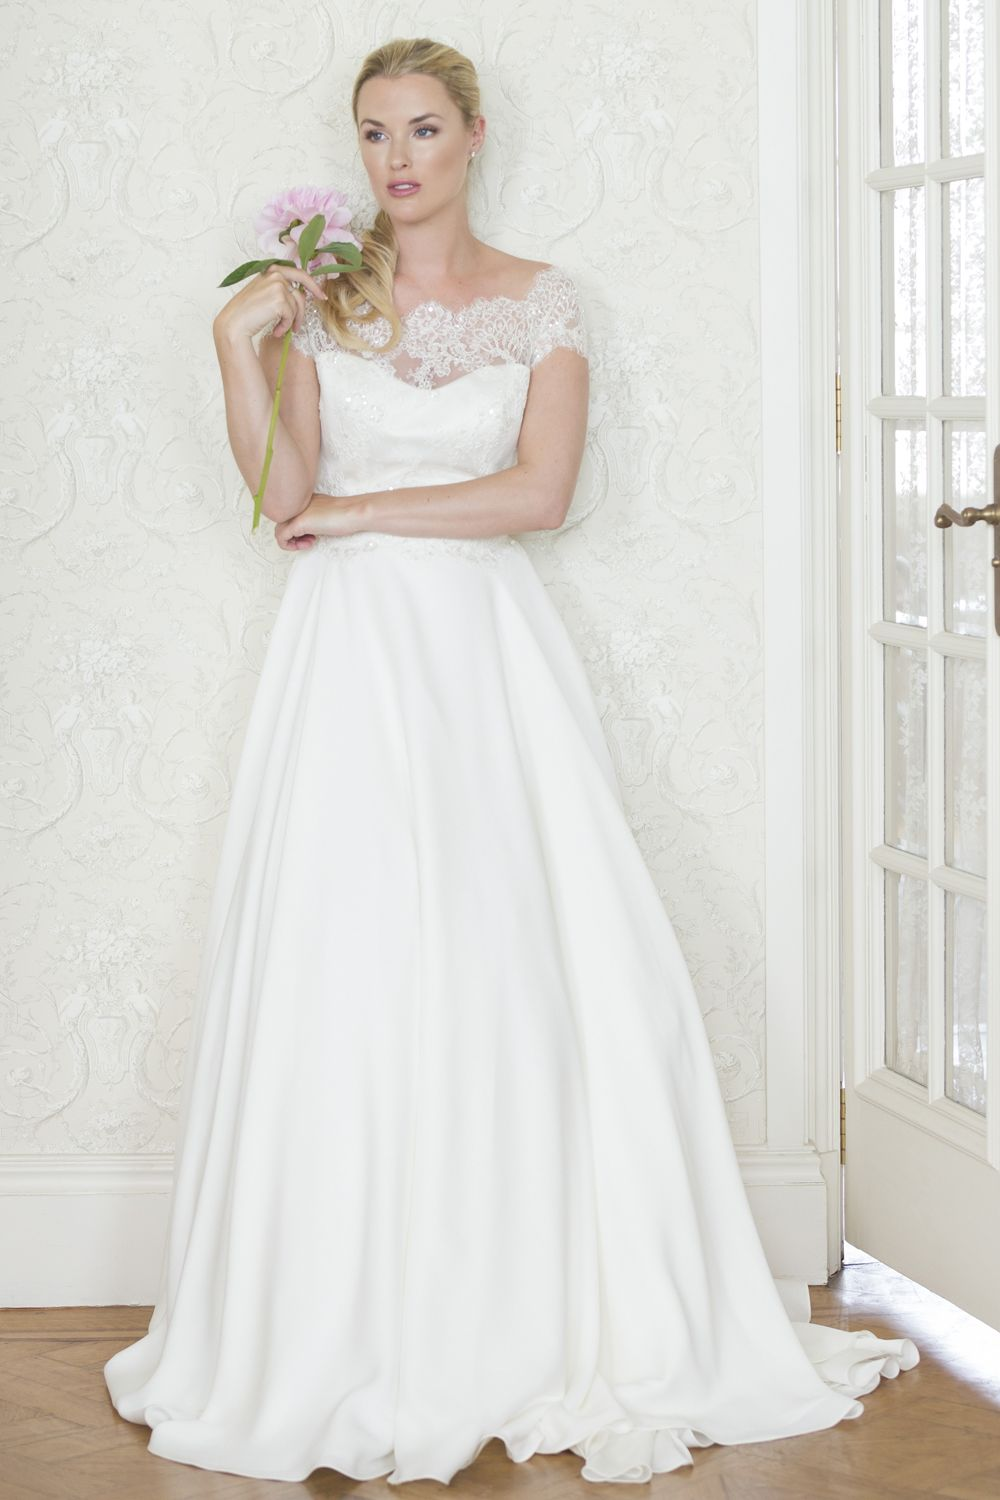 Wedding Dress Inspiration - The Ultimate Bride St. Louis, MO ...